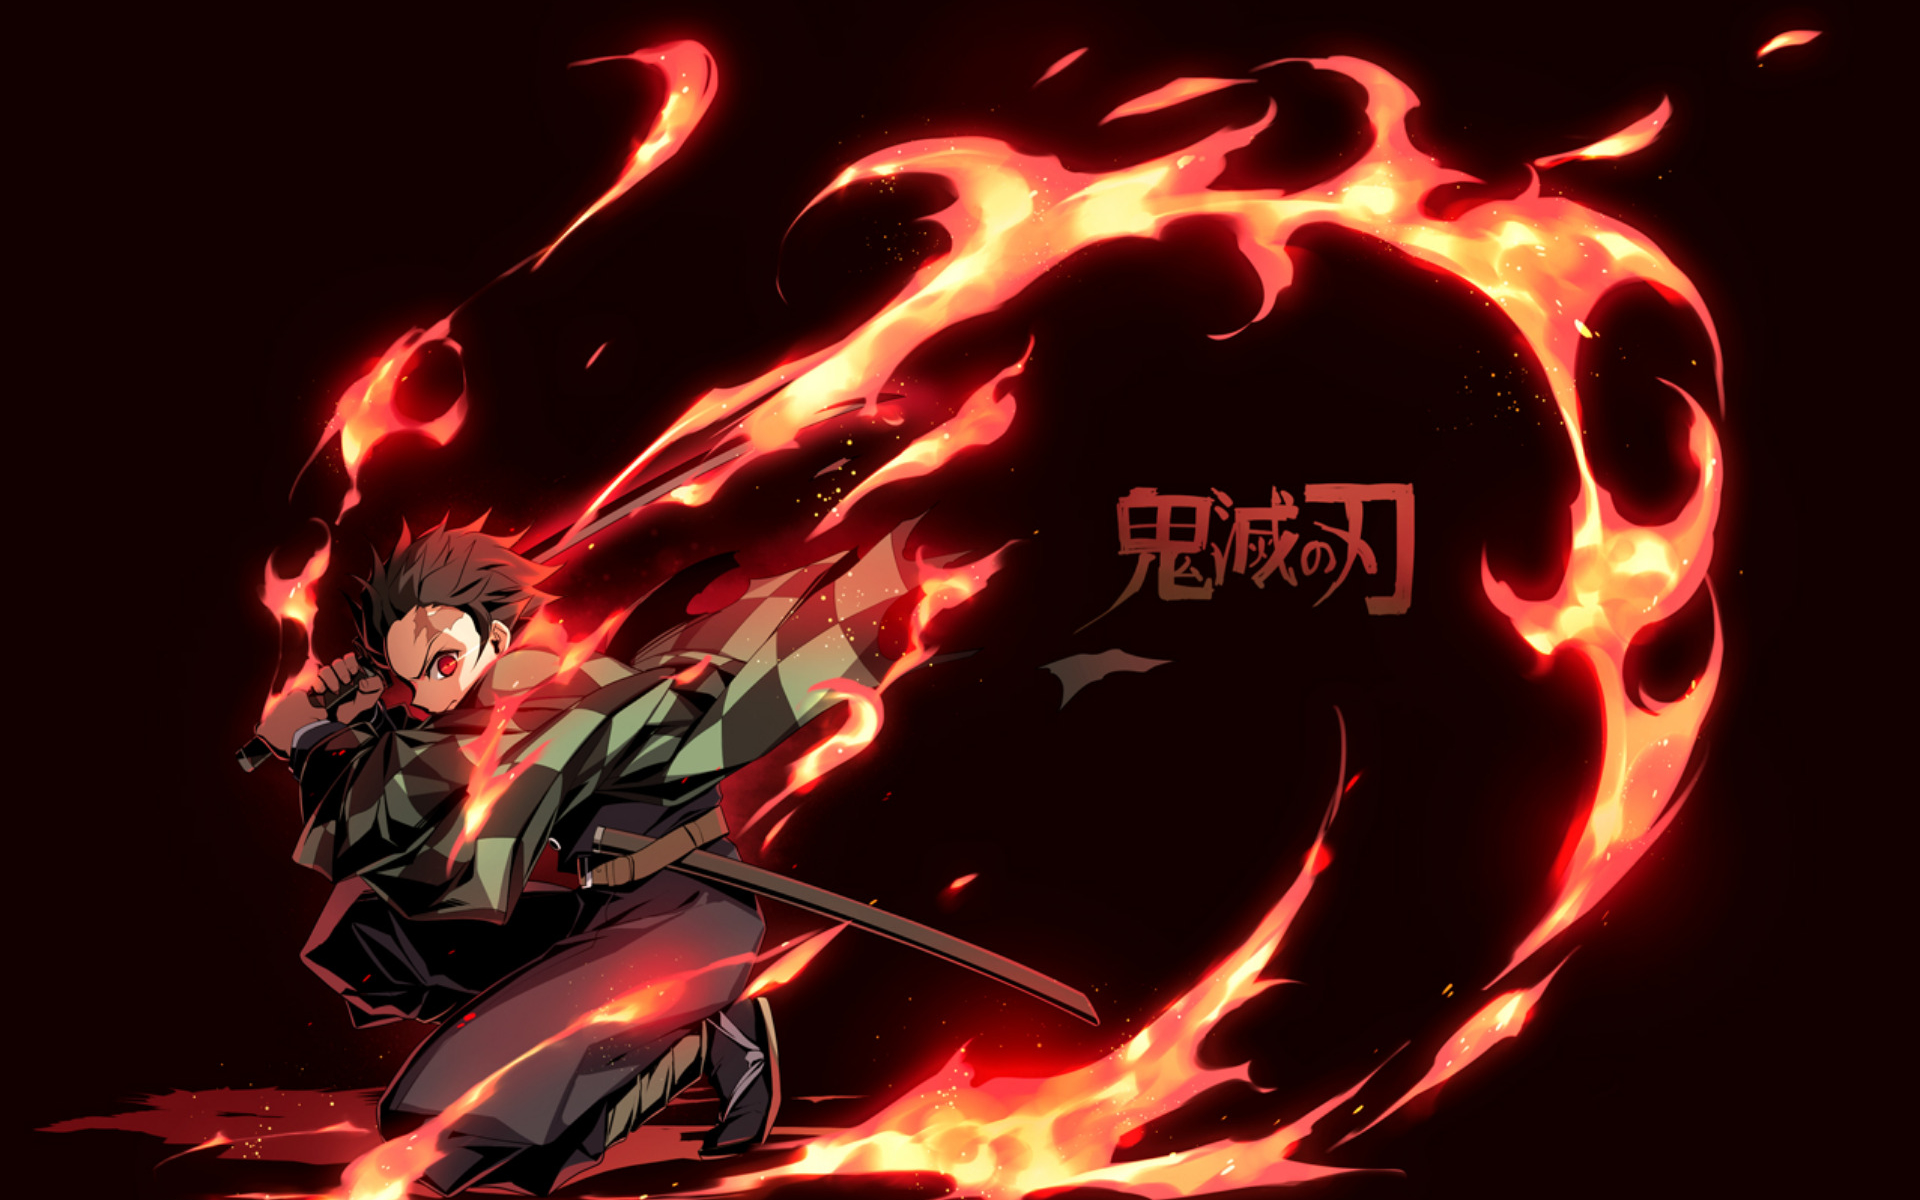 Wallpaper of Tanjirou Kamado Demon Slayer Kimetsu no Yaiba 1920x1200